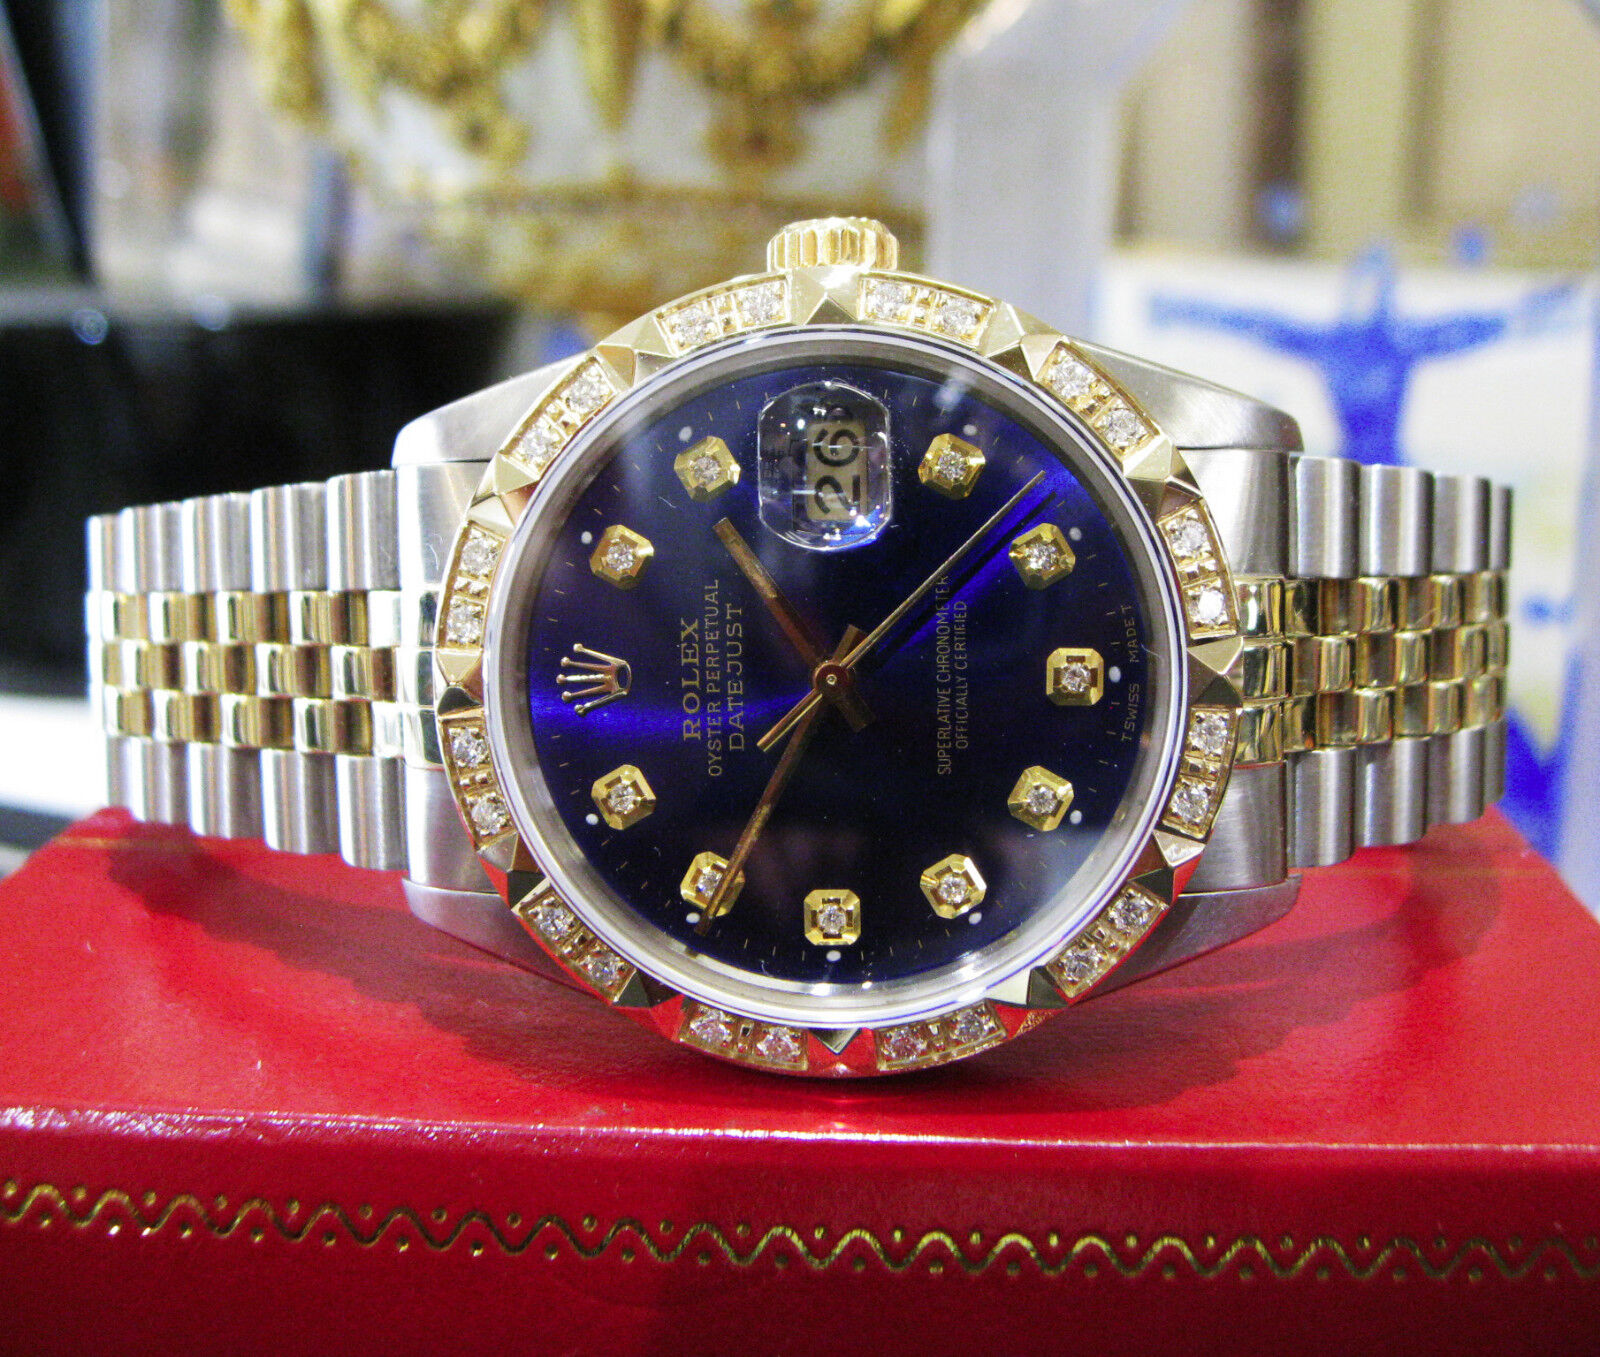 $7195.00 - Mens ROLEX Oyster Perpetual Datejust Diamonds Yellow Gold Stainless Steel Watch